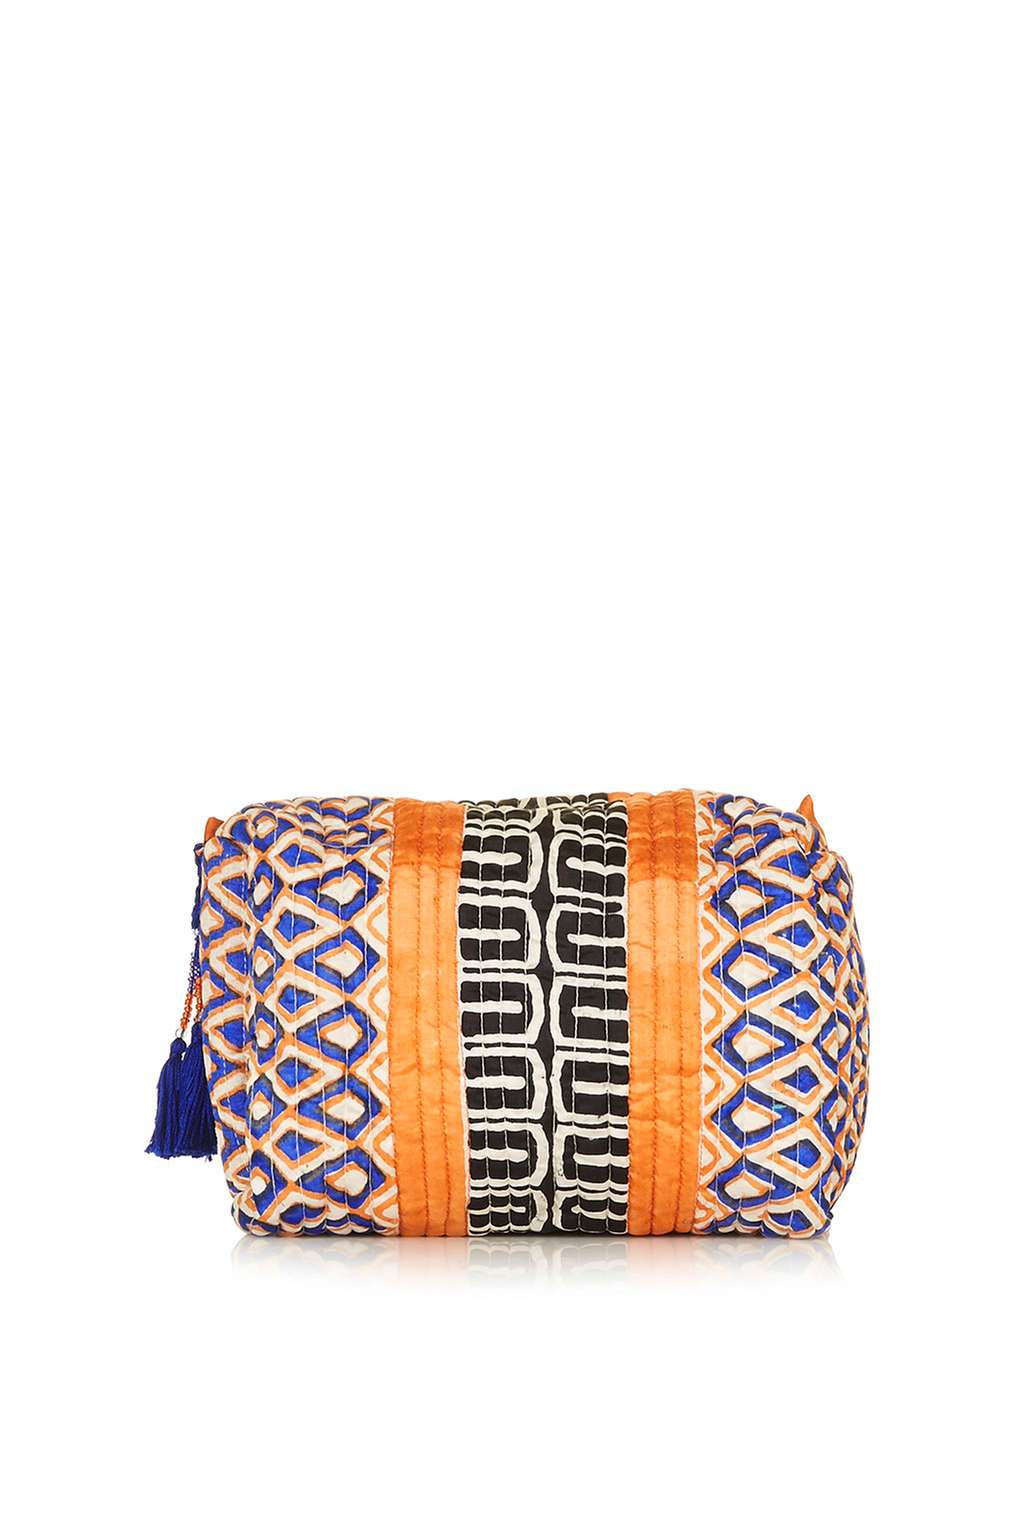 Topshop Key To Freedom Make Up Bag In Metallic Lyst